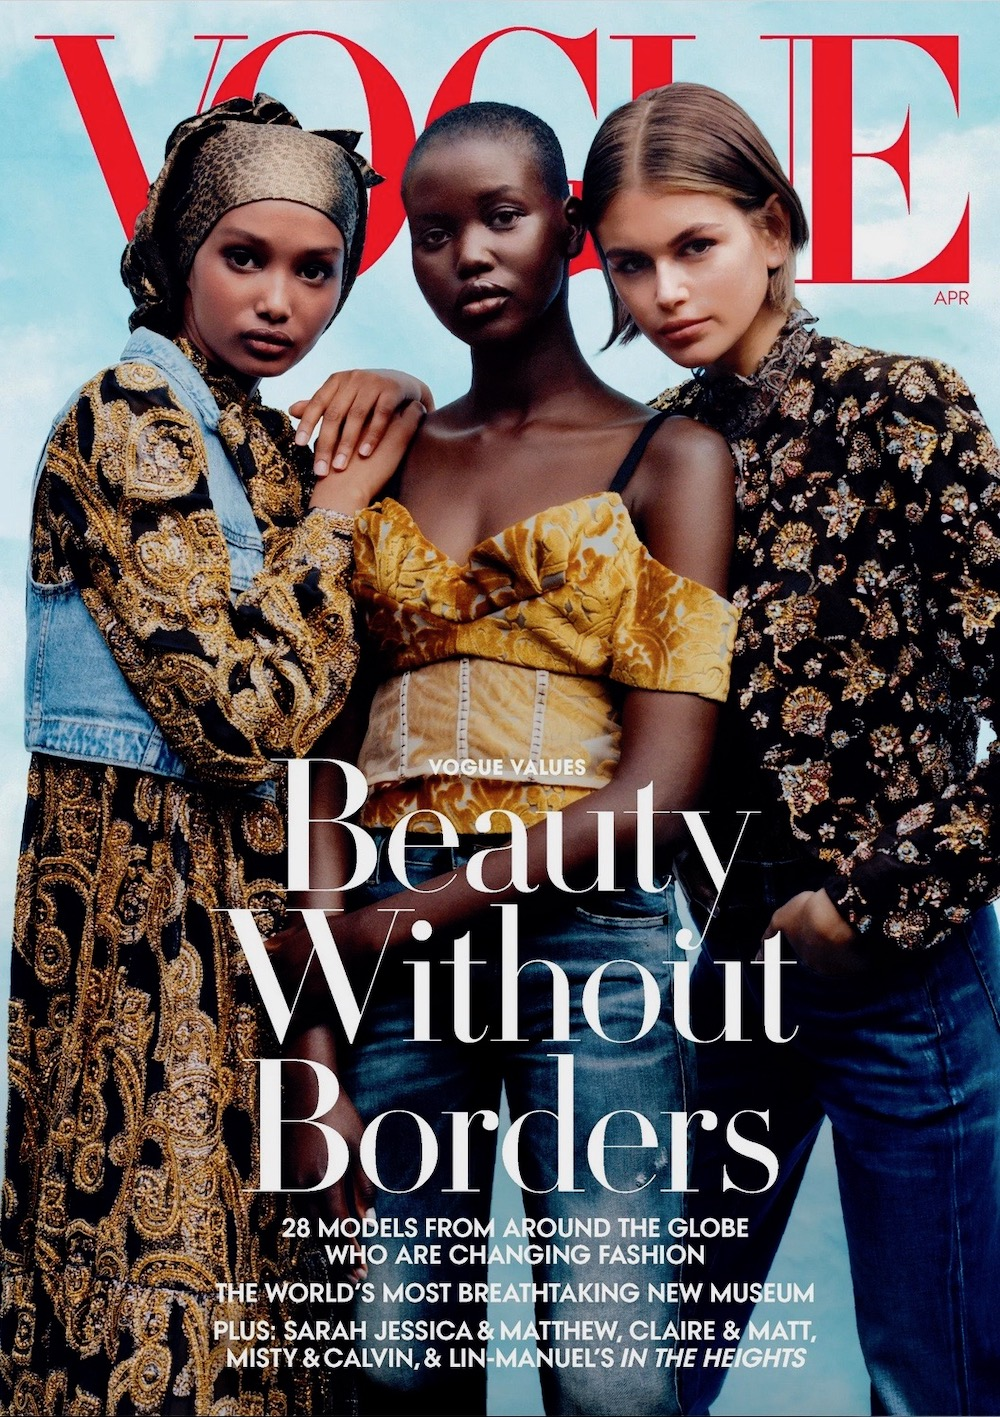 April 12 Magazine Covers We Loved and Hated   theFashionSpot